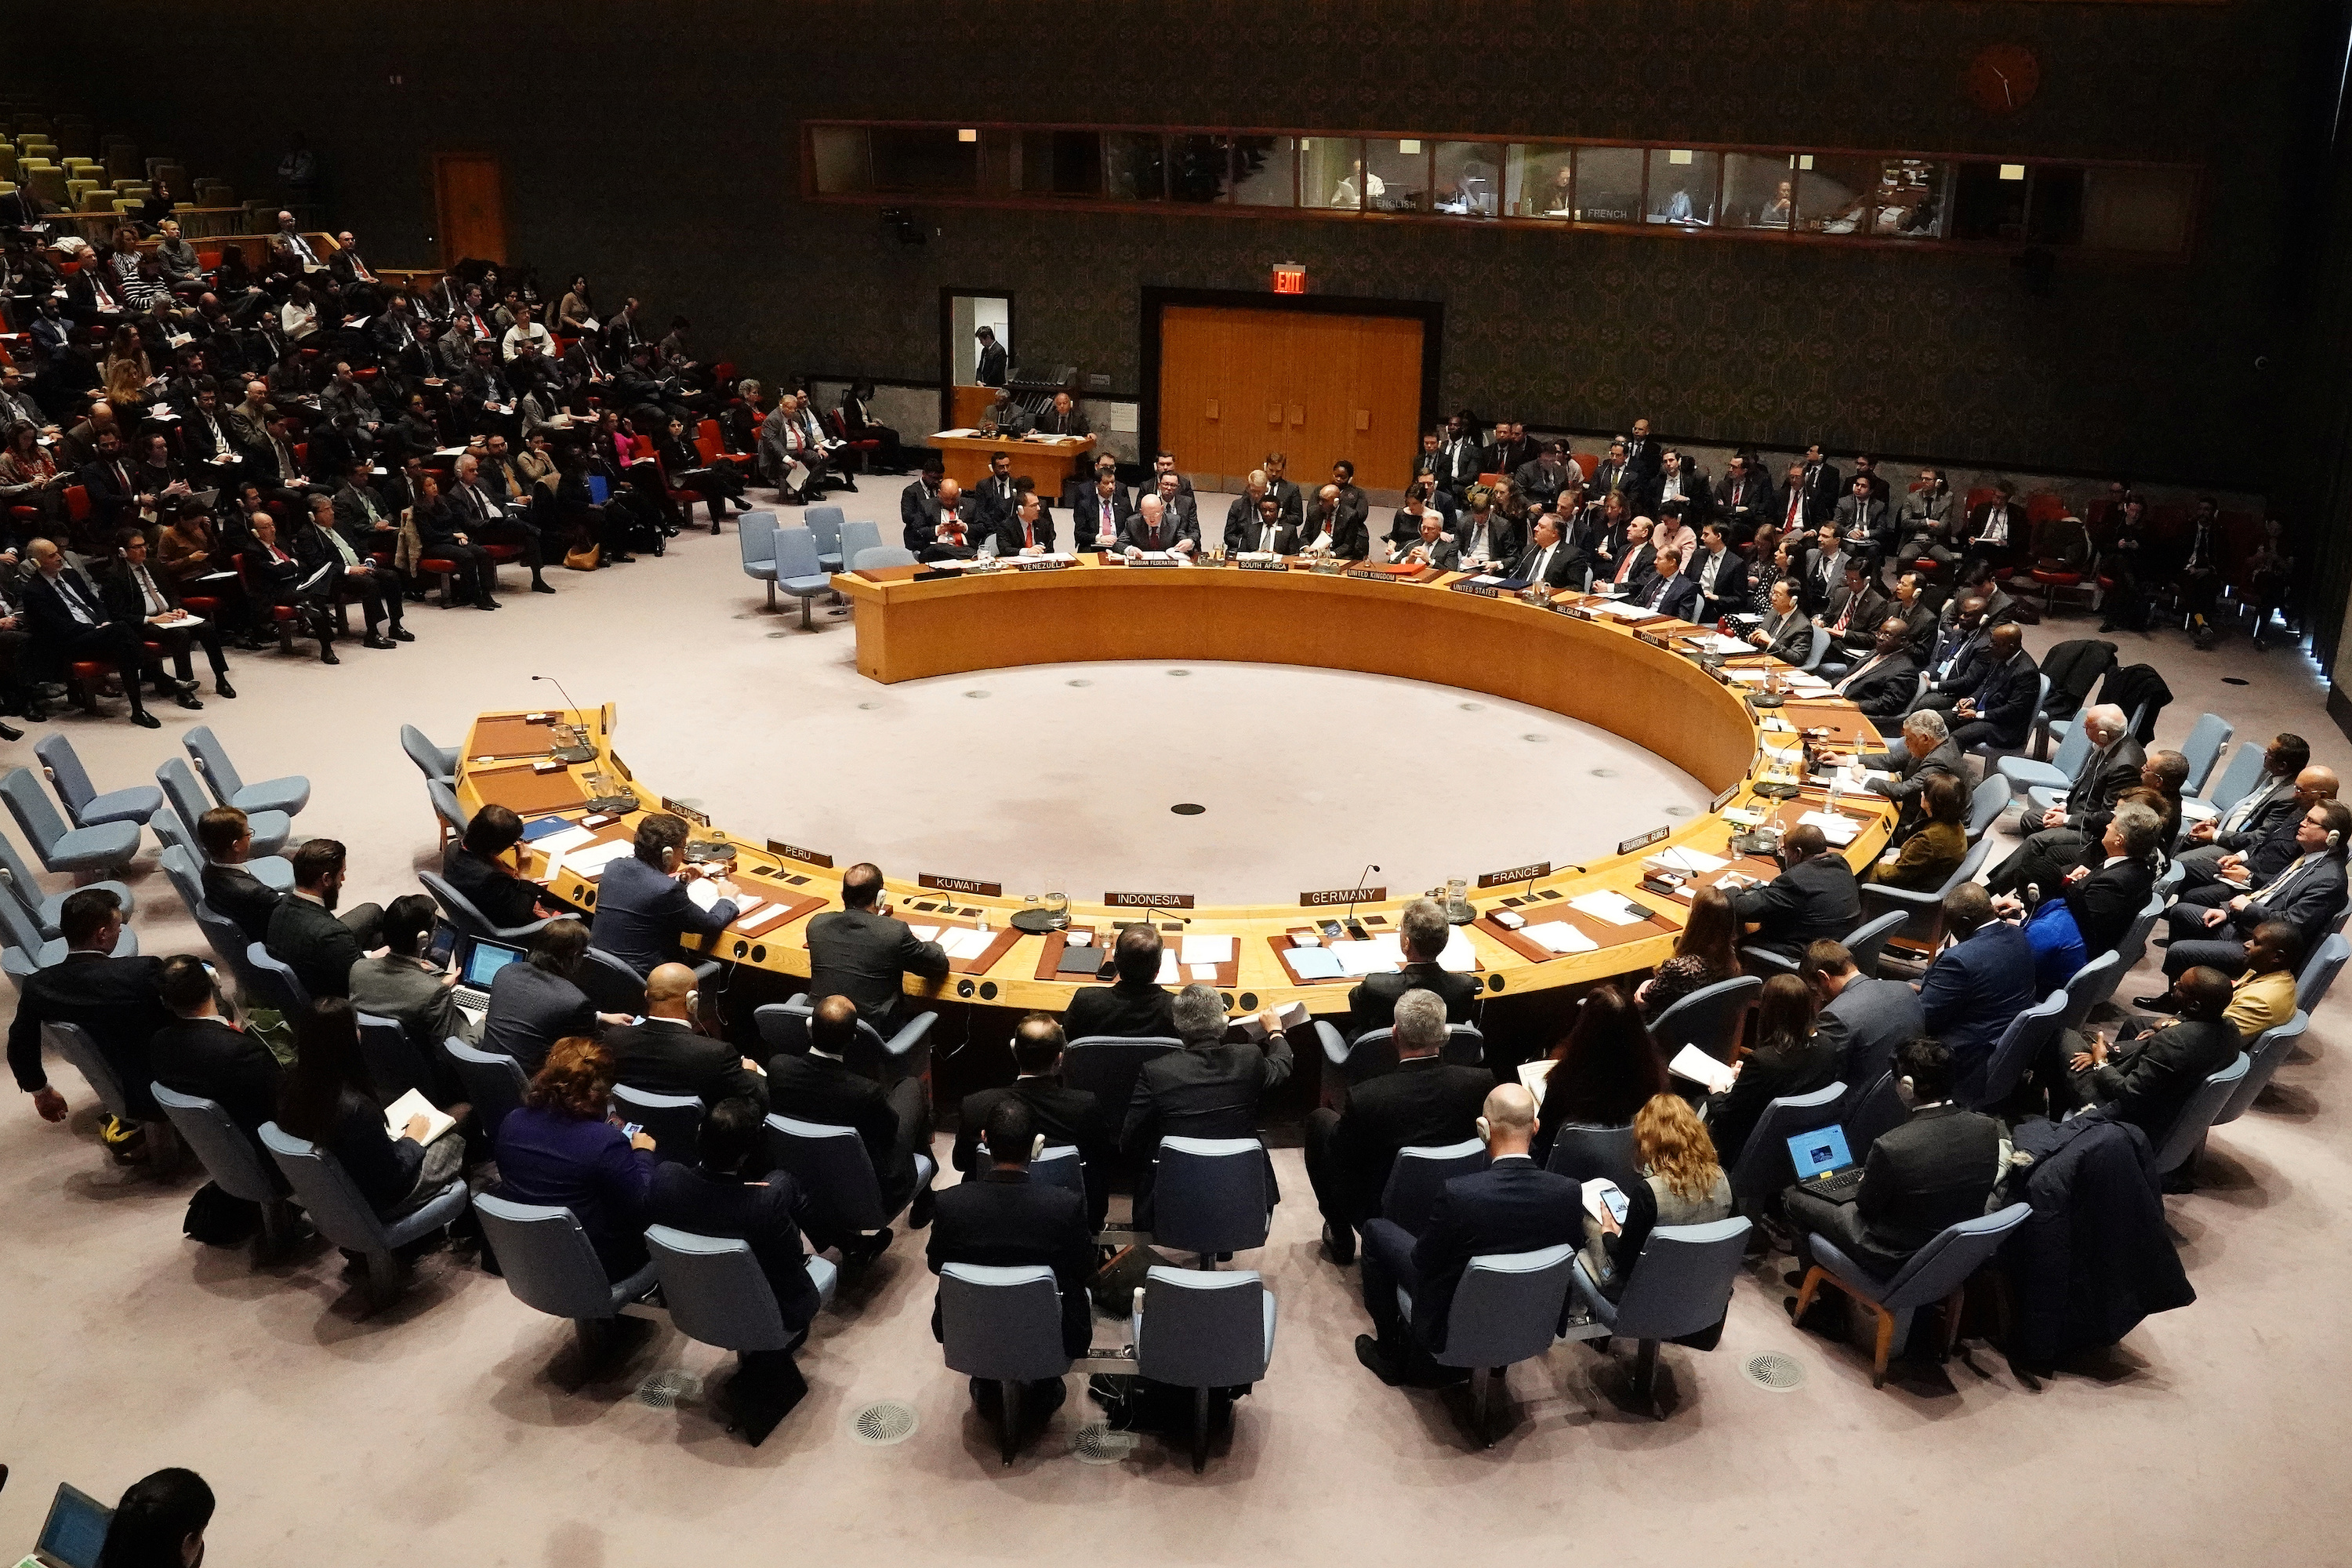 UN Security Council Overcomes Chinese Veto Threat to Renew Afghanistan Mission